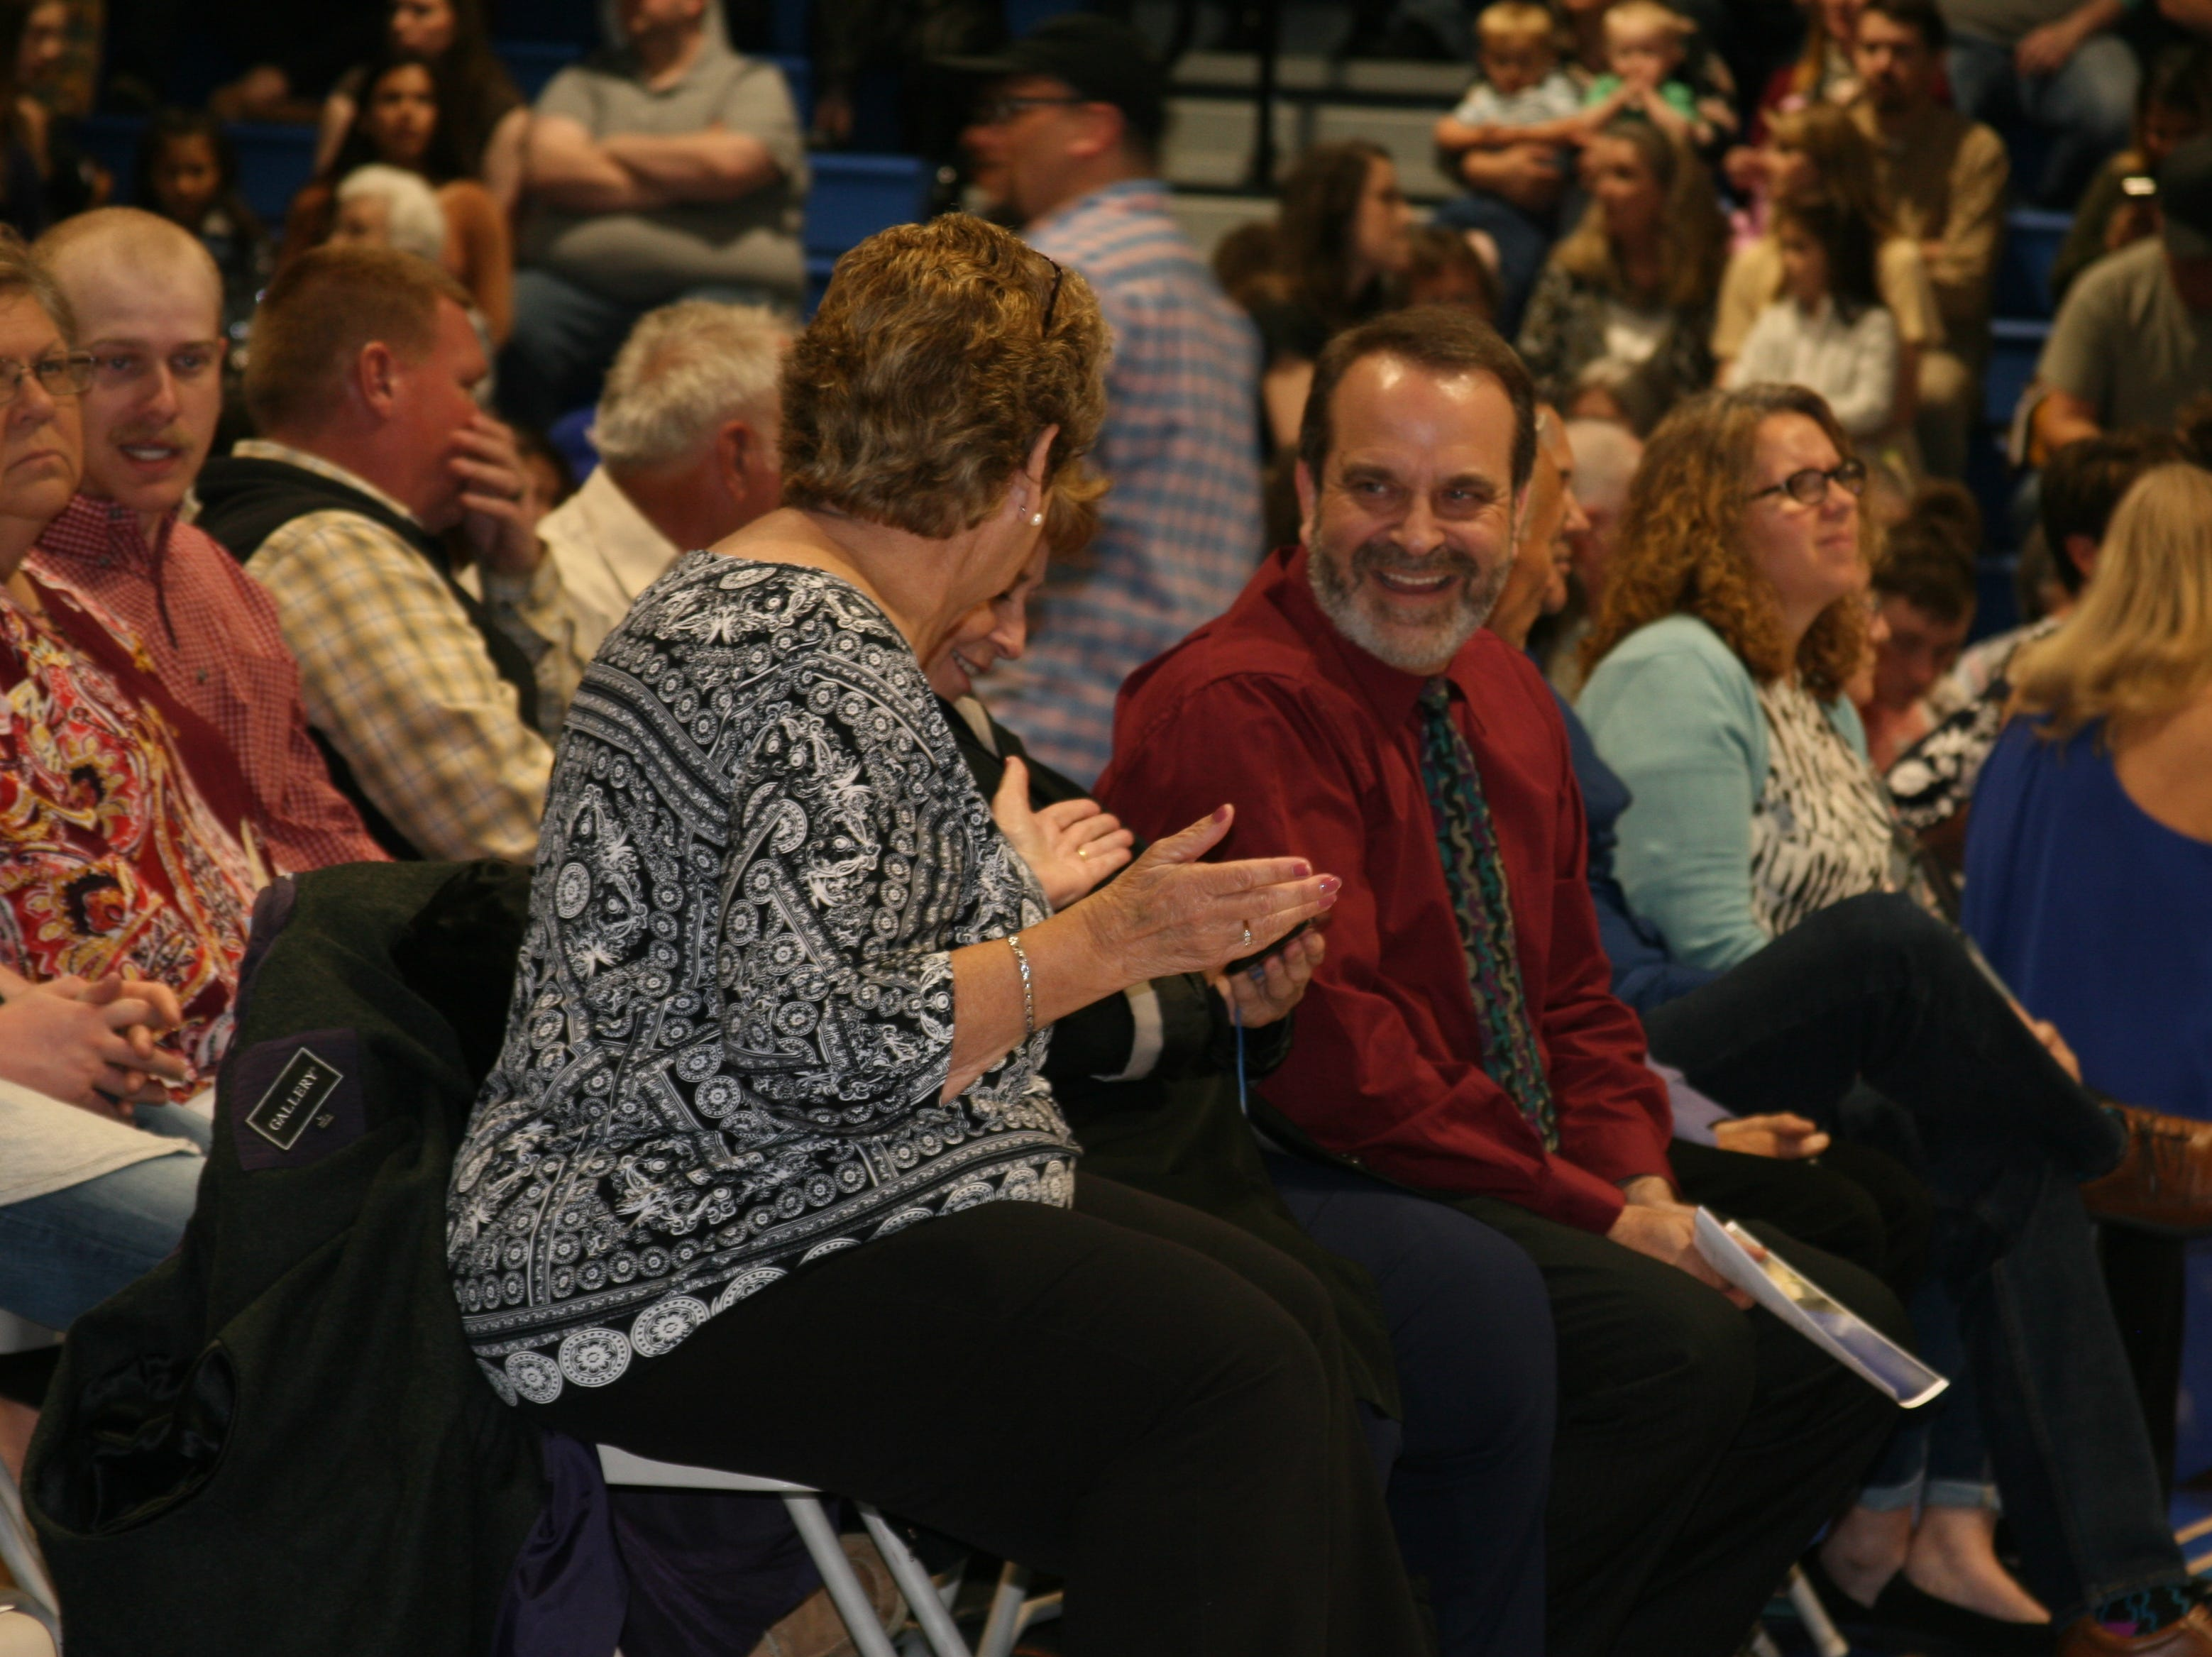 Parents chatted amongst themselves as they waited for their graduates to arrive in the gymnasium of Cotter High School and for the 2019 graduation ceremonies to begin.